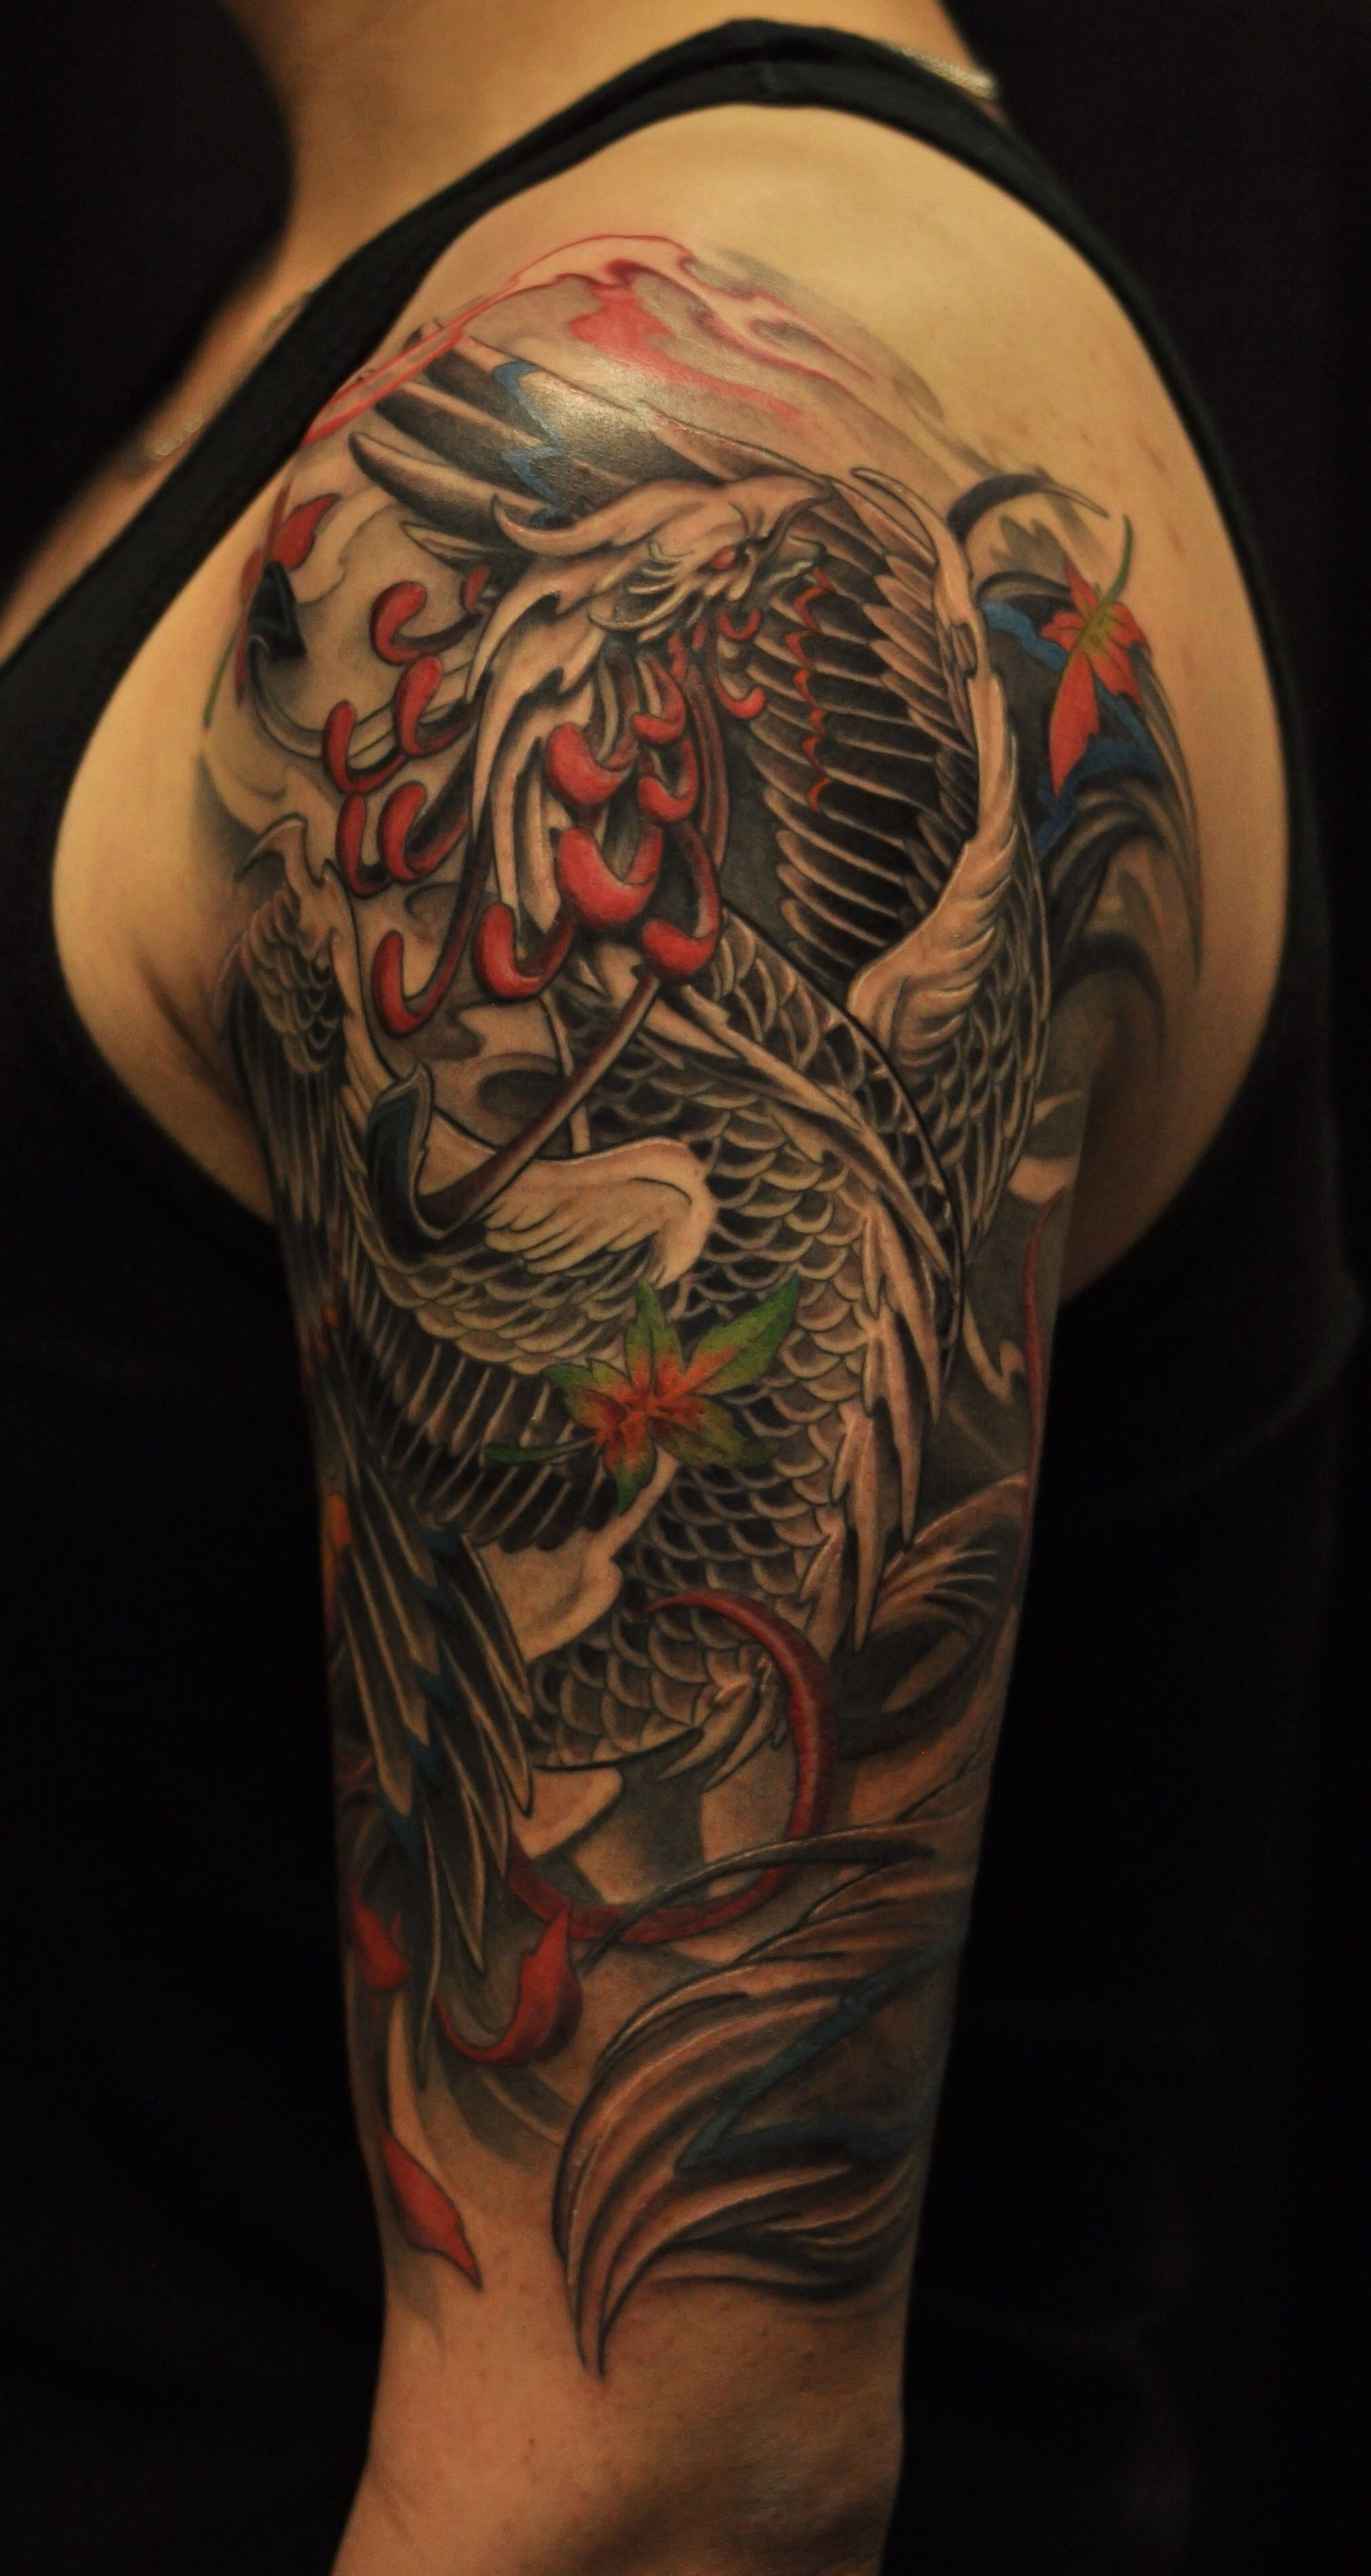 This Is One Of The Coolest Phoenix Tattoos Ive Seen Tattoo